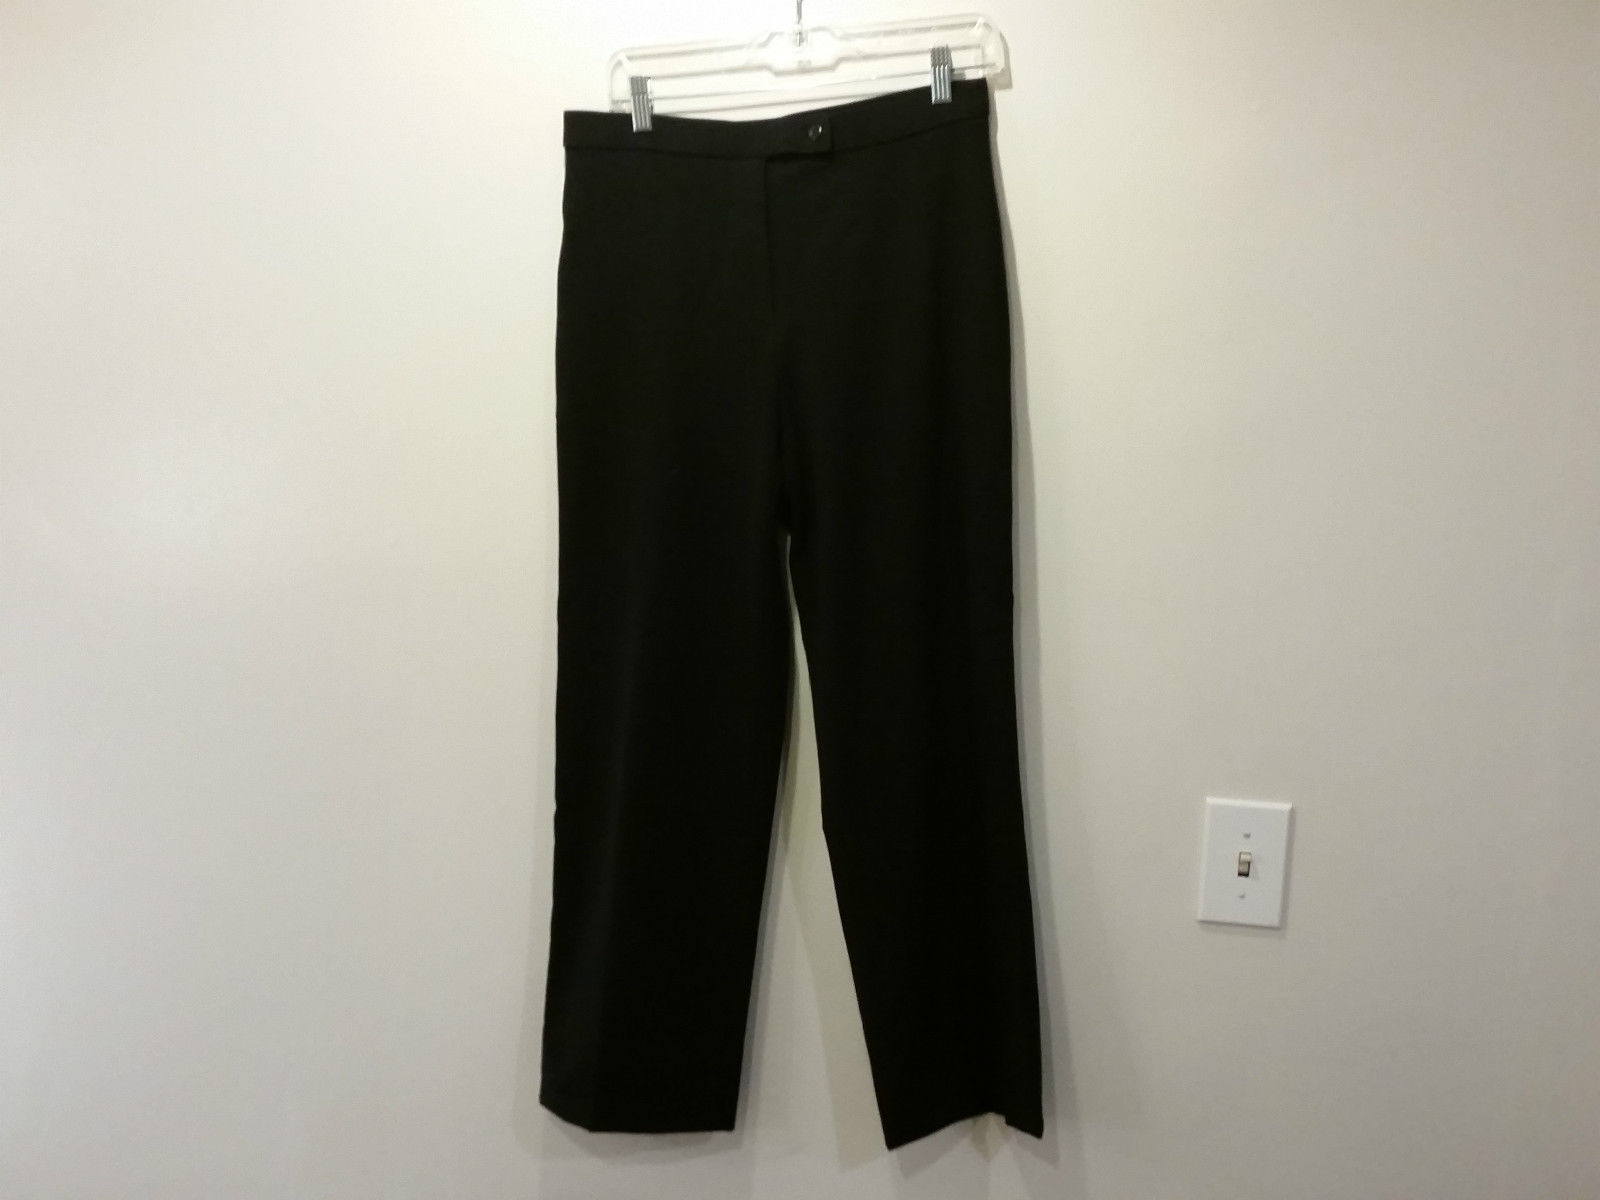 Coldwater Creek Black Flat Front Dress Pants One Back Pocket Size 8